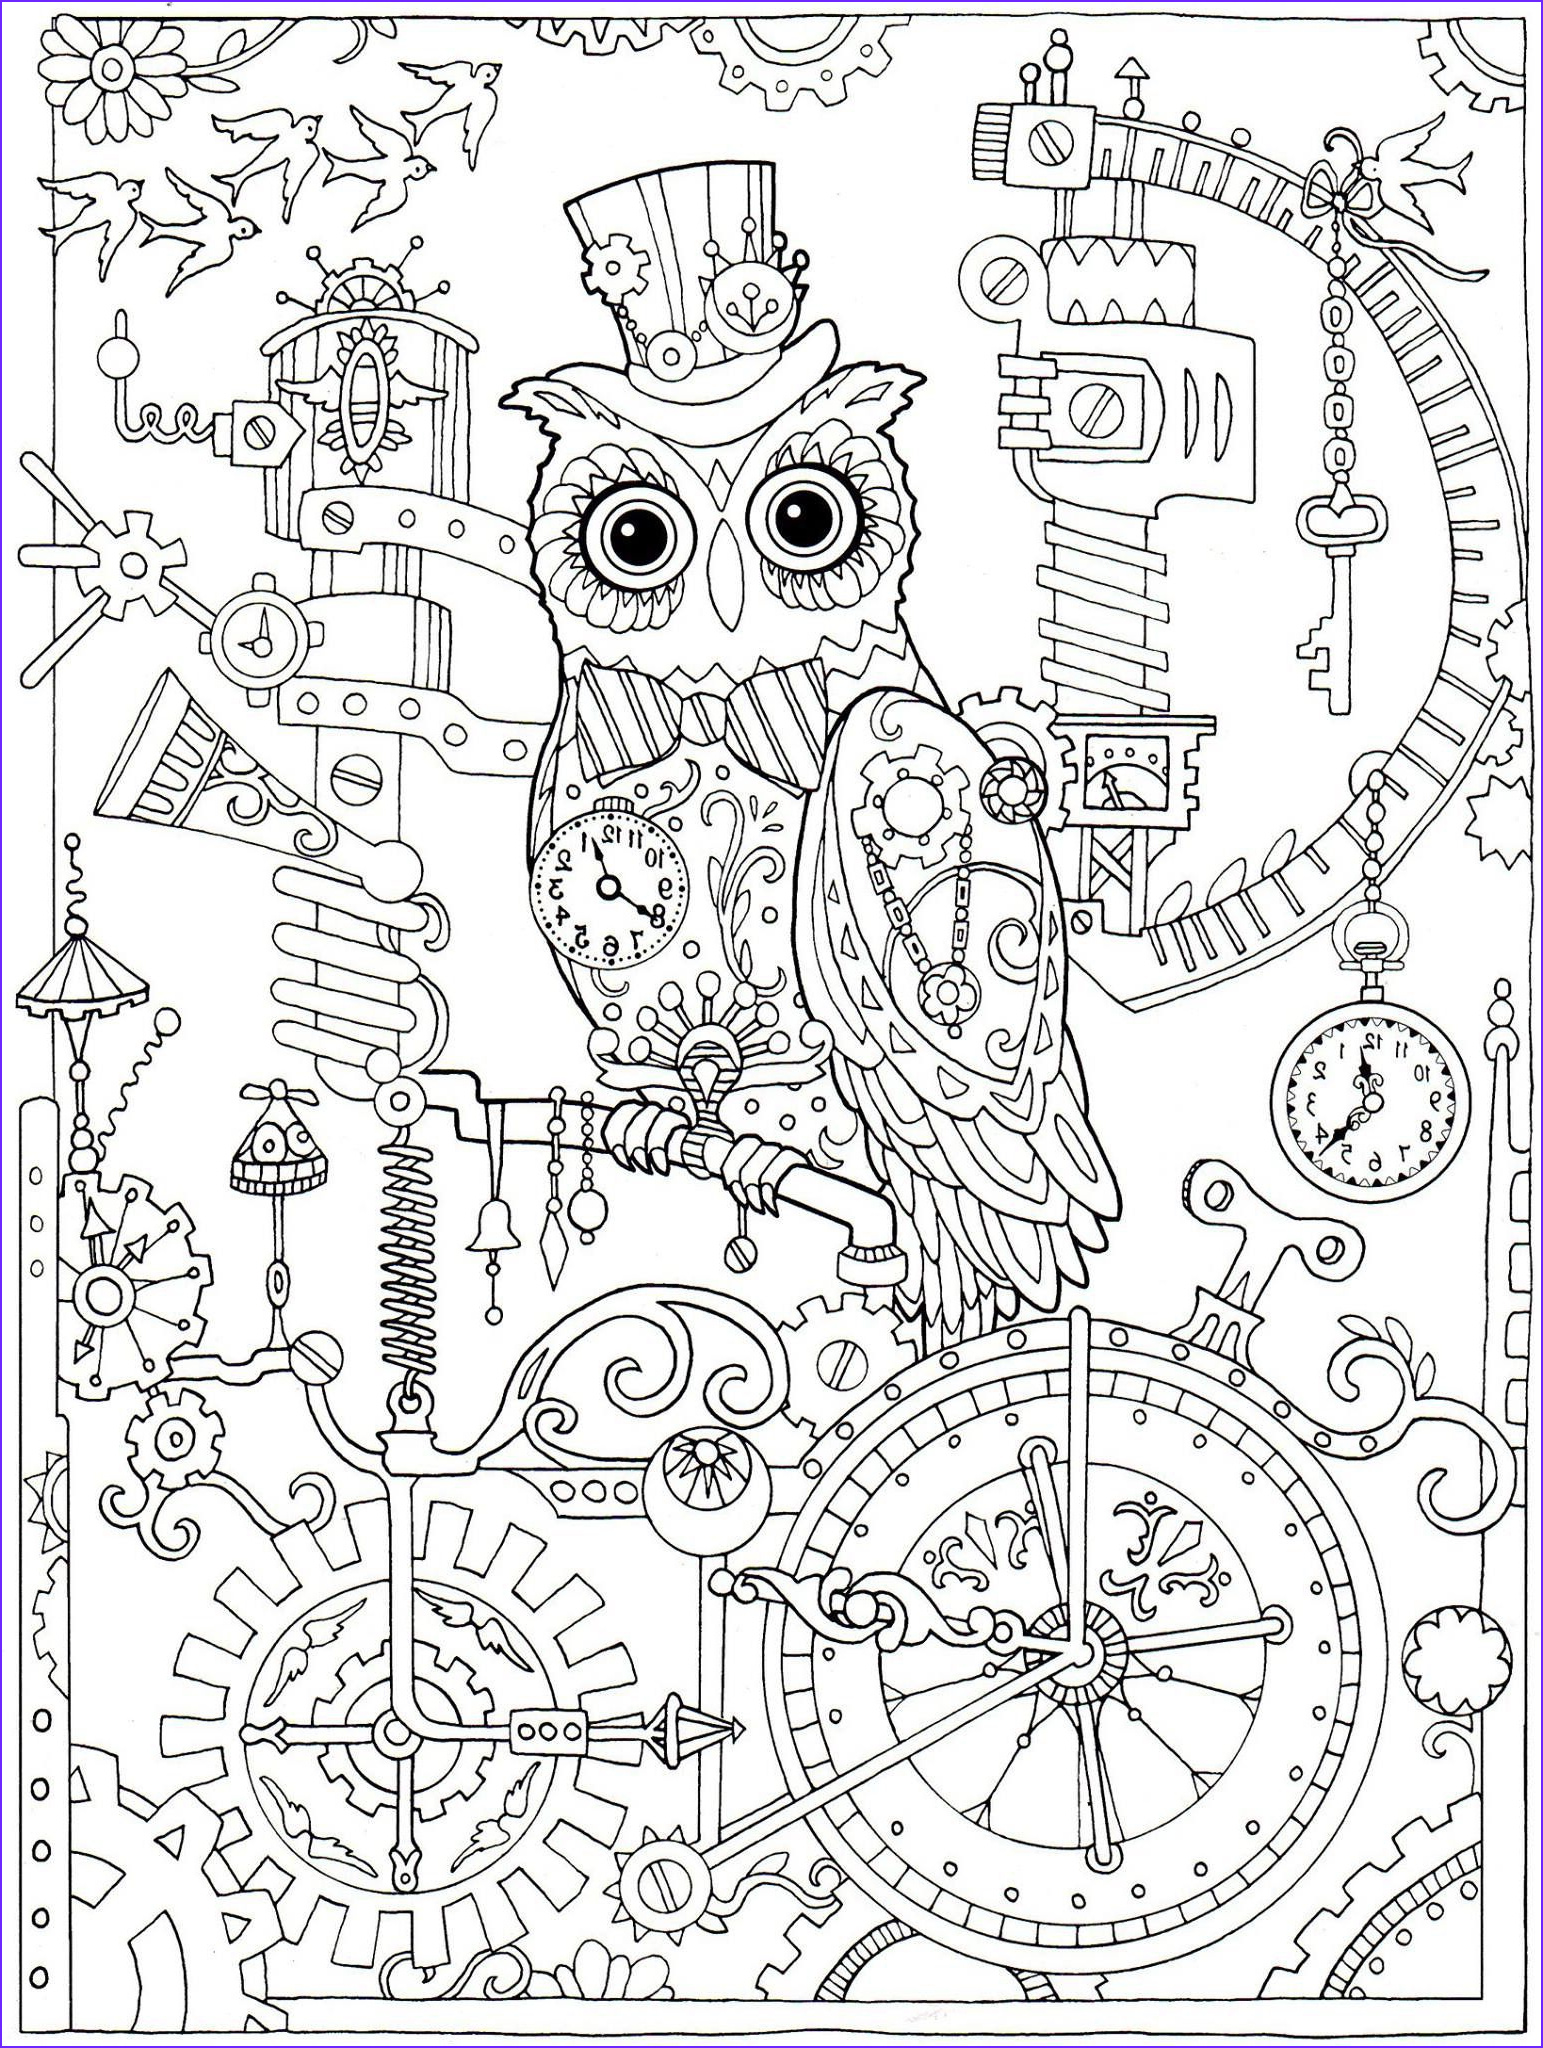 Owl Coloring Books for Adults Beautiful Gallery Adult Coloring Book Coloring Pages